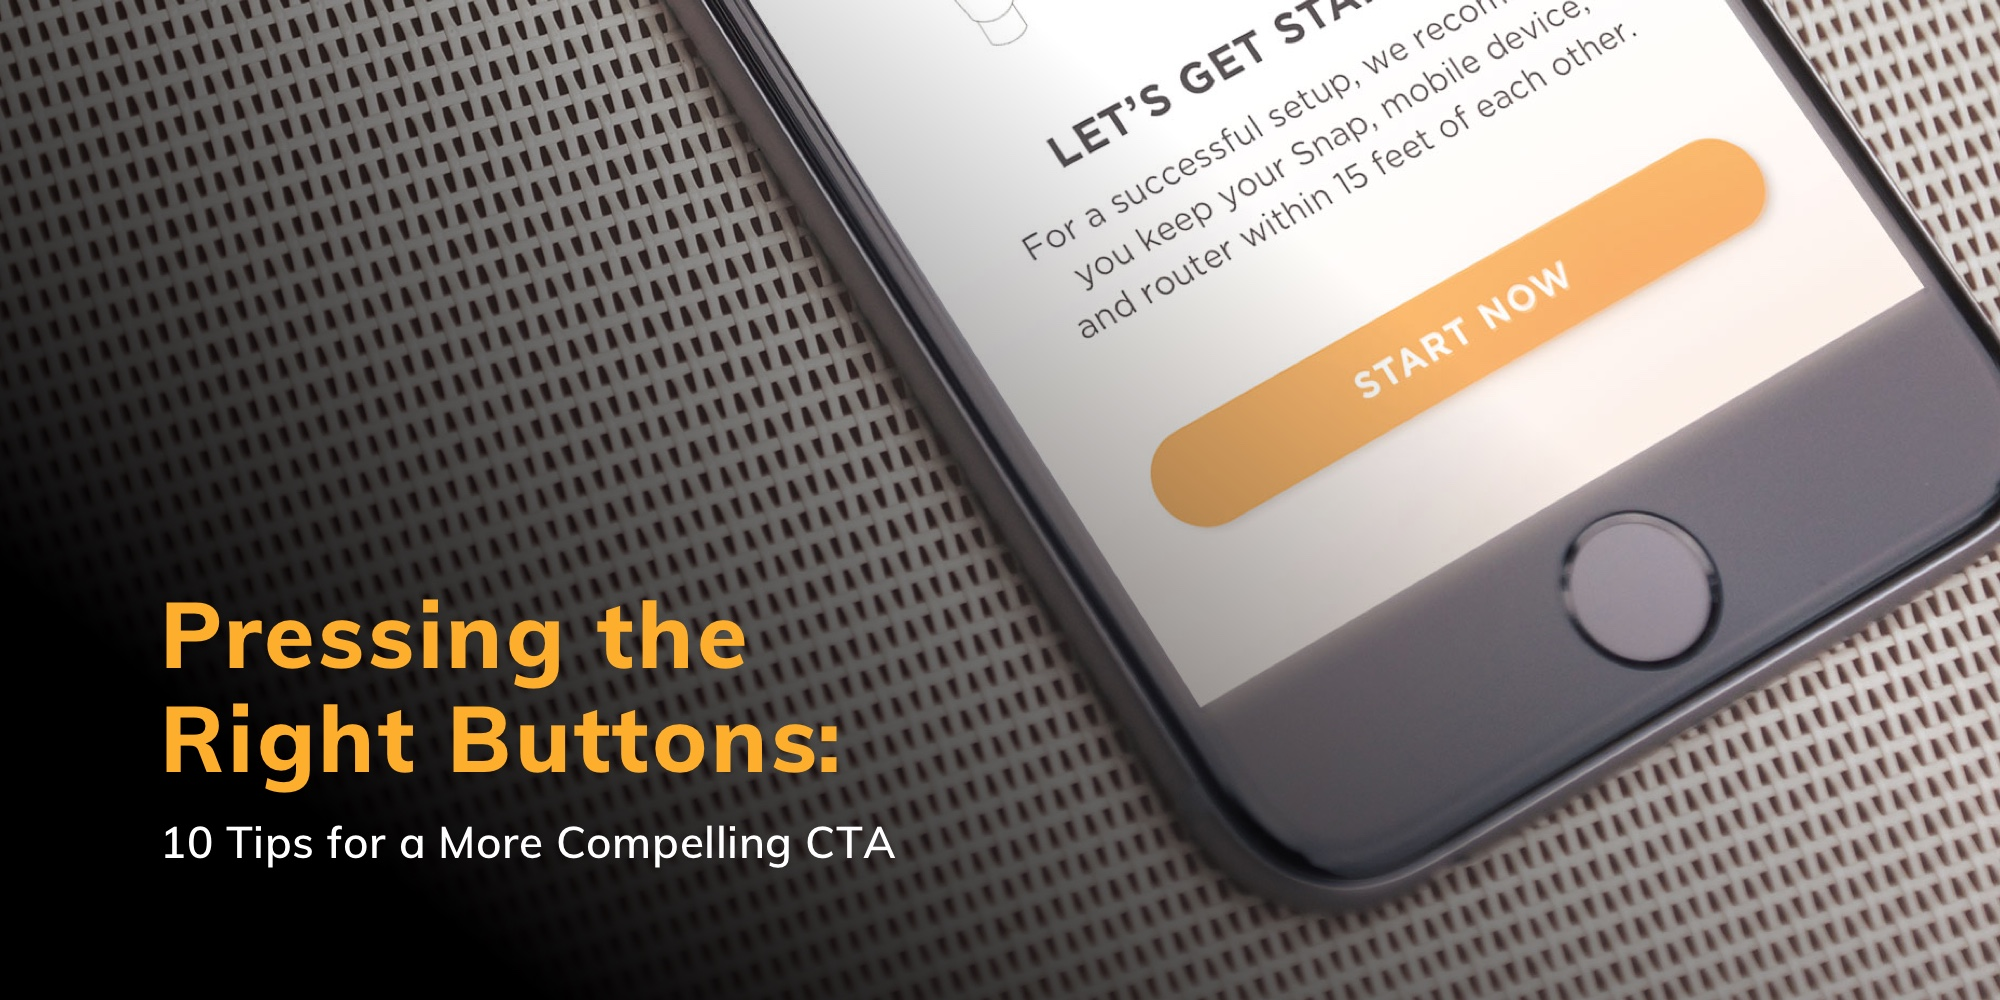 Pressing the right buttons: 10 Tips for a more compelling CTA